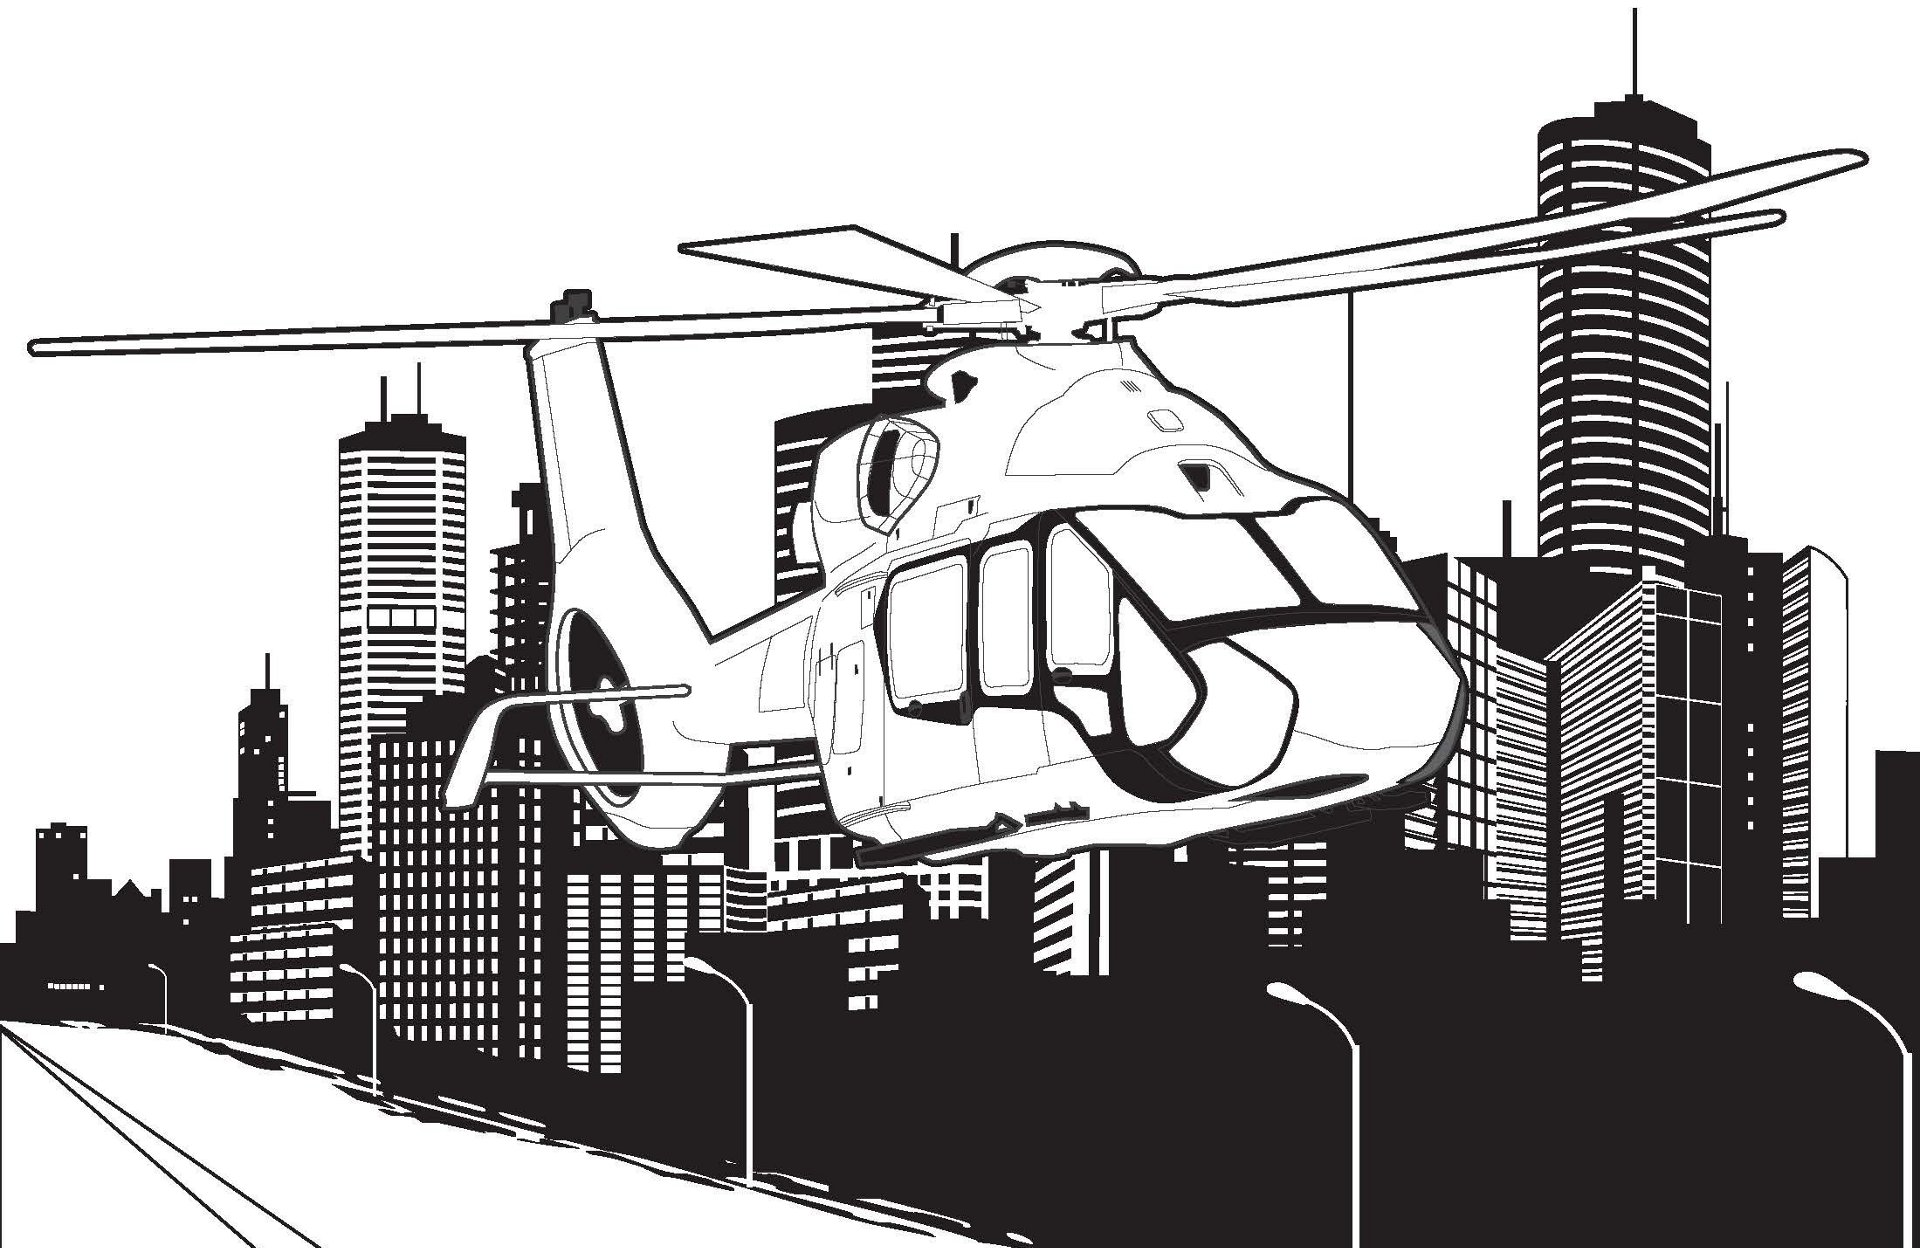 H160 image from AHI coloring book.